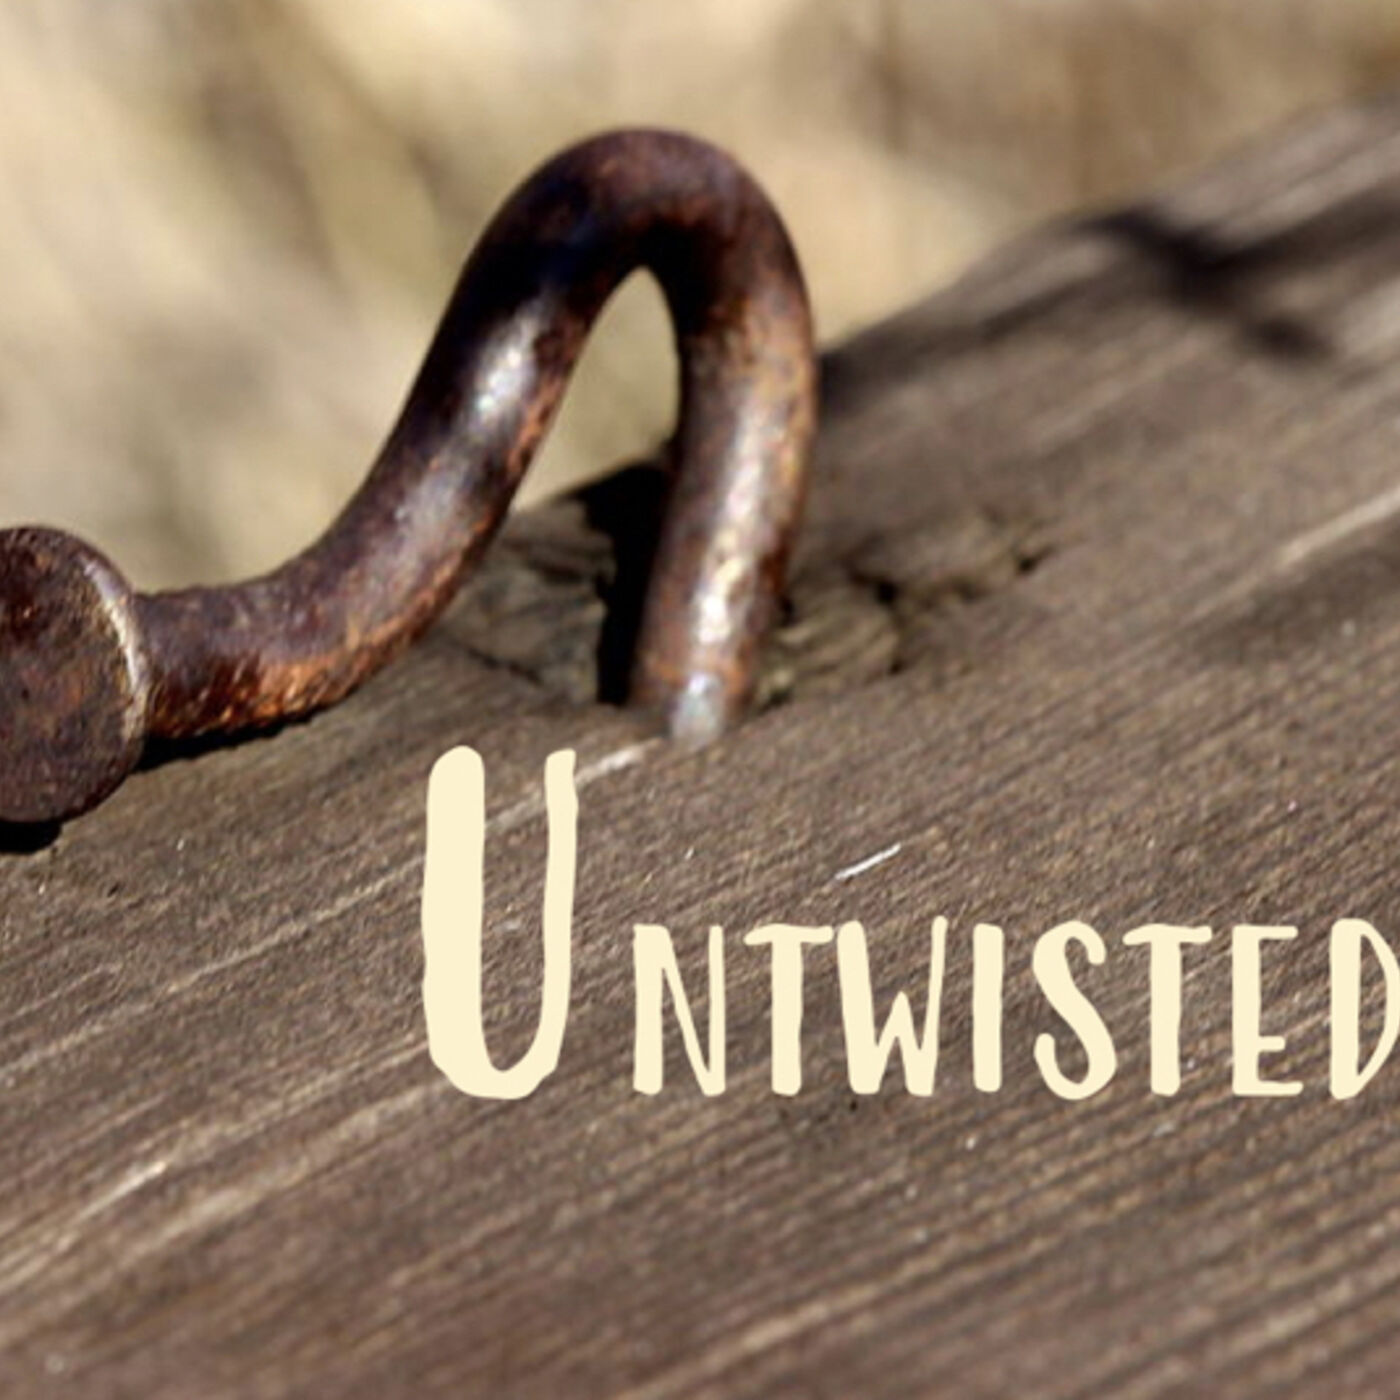 Untwisted: Peacemaker